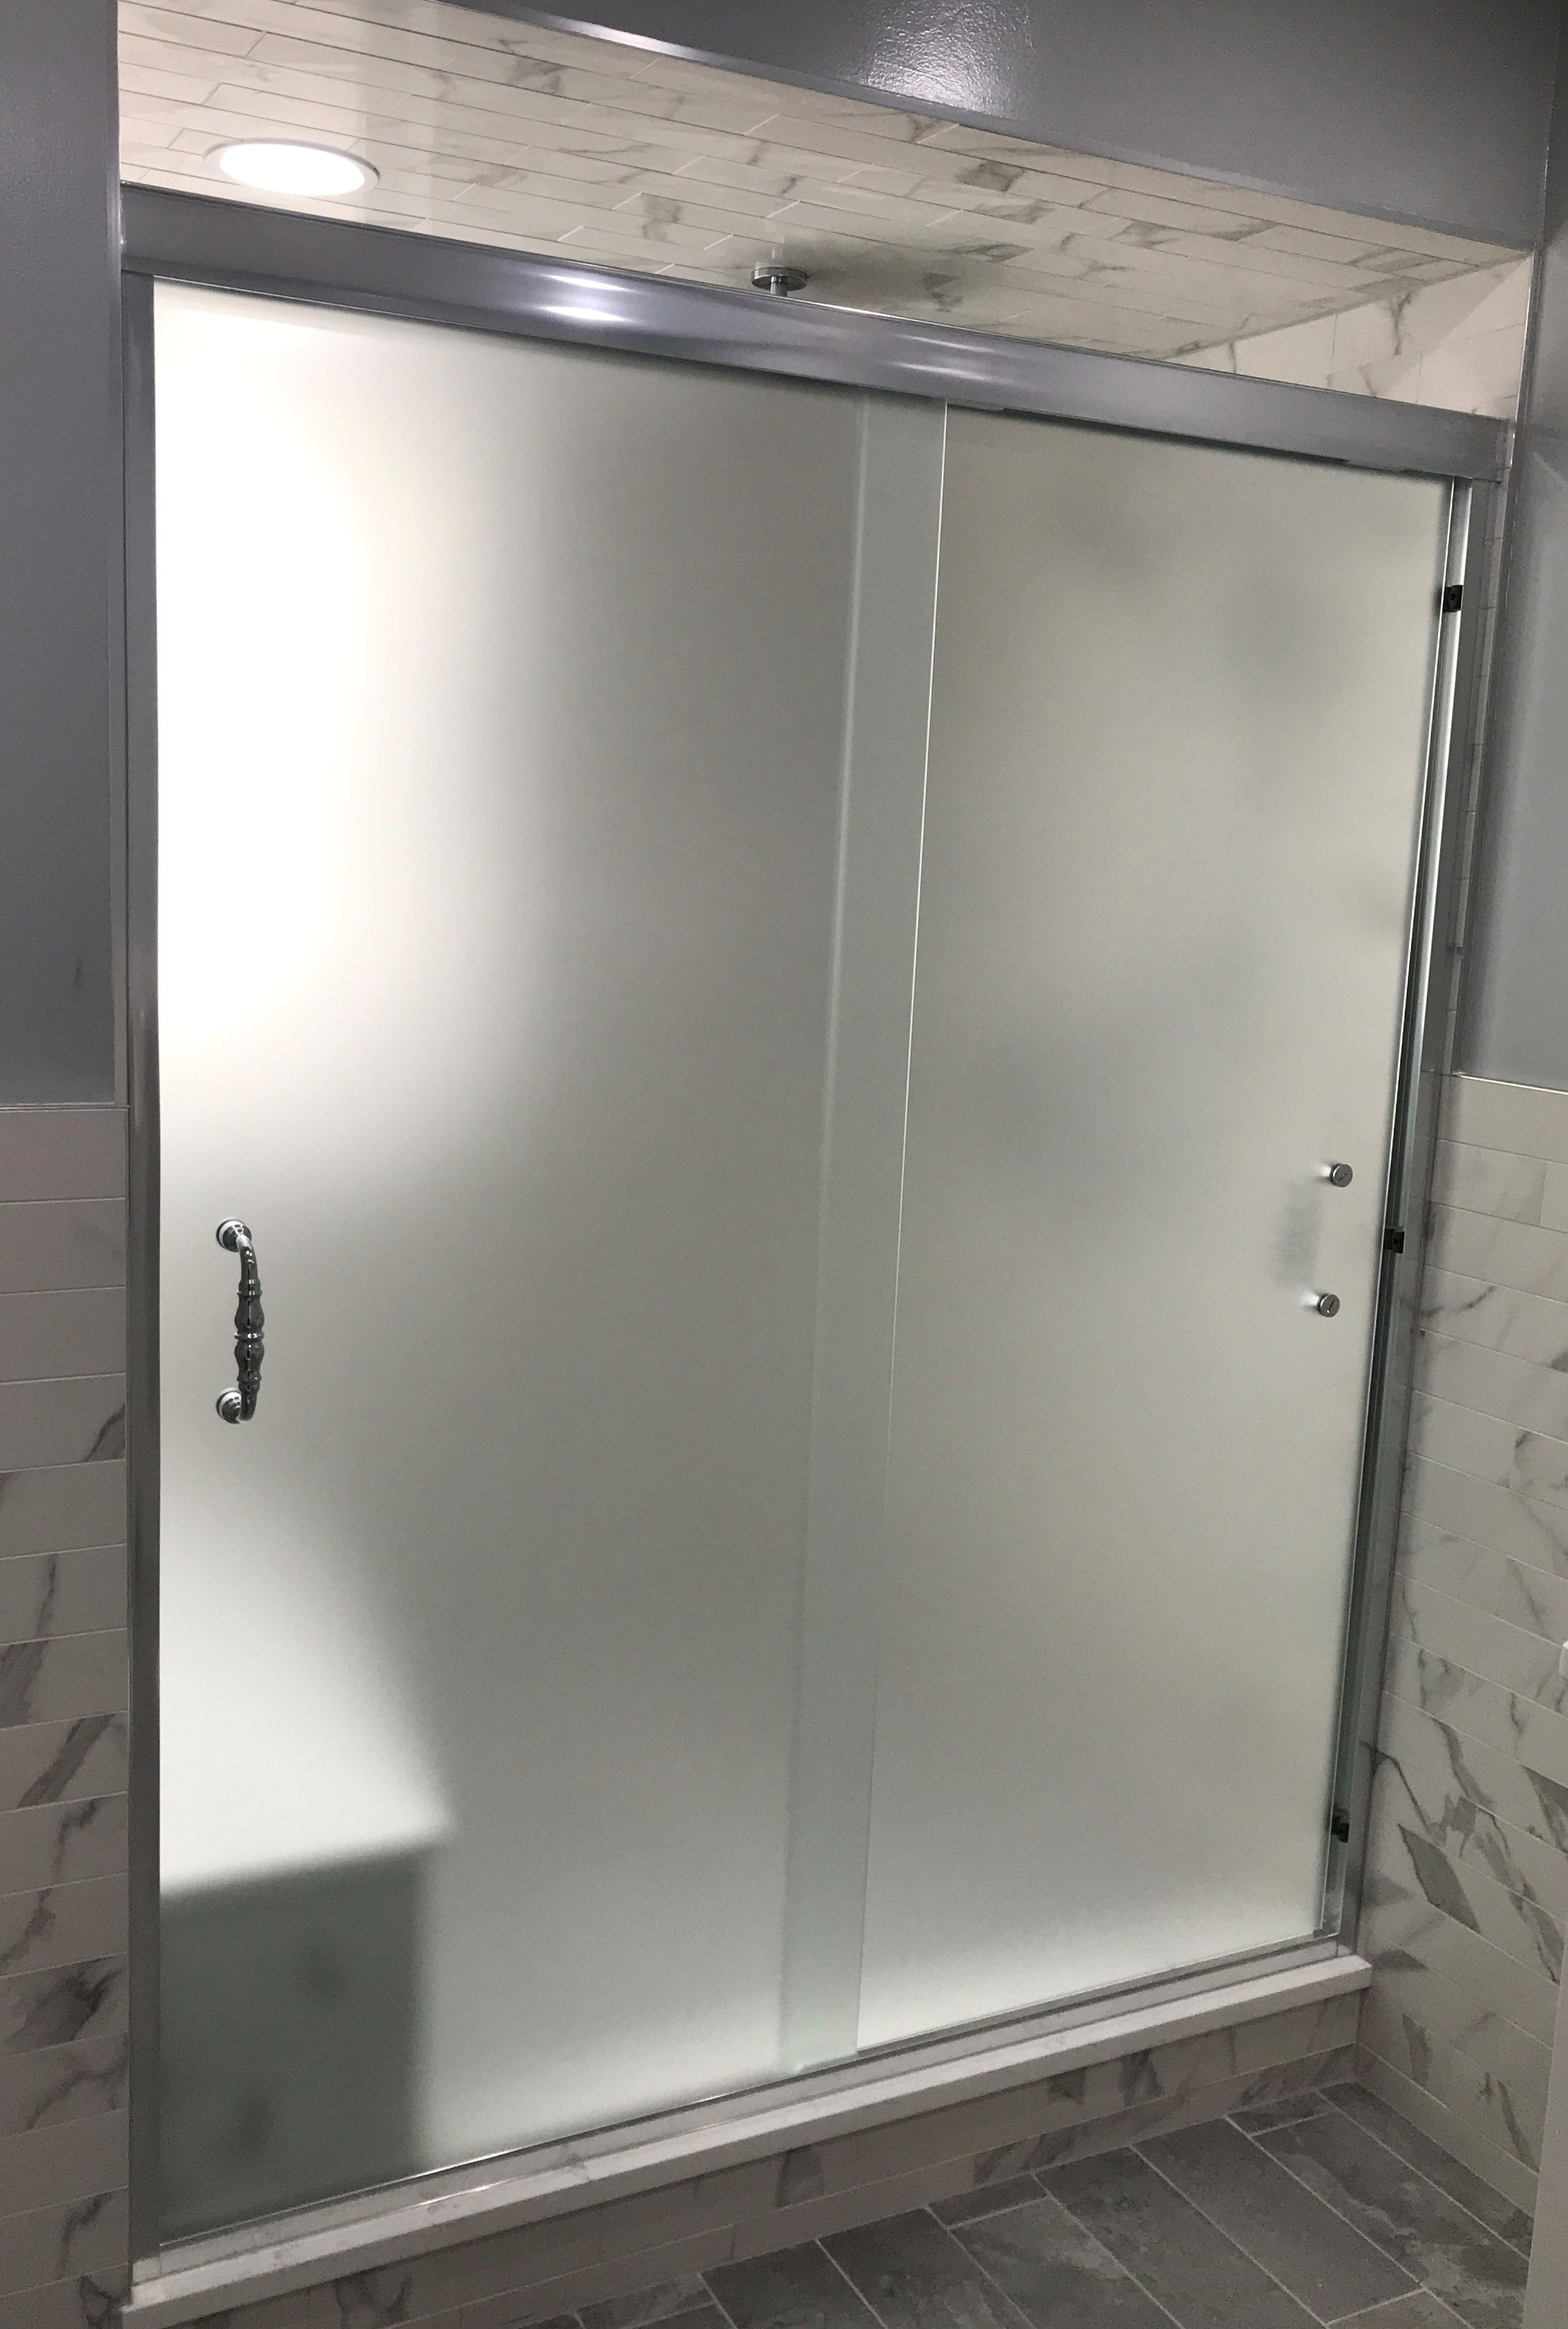 Semi Frameless Sliders For Shower Stall With Satin Etch Glass And Spindle Hand Glass Shower Enclosures Etched Glass Shower Doors Frameless Bypass Shower Doors